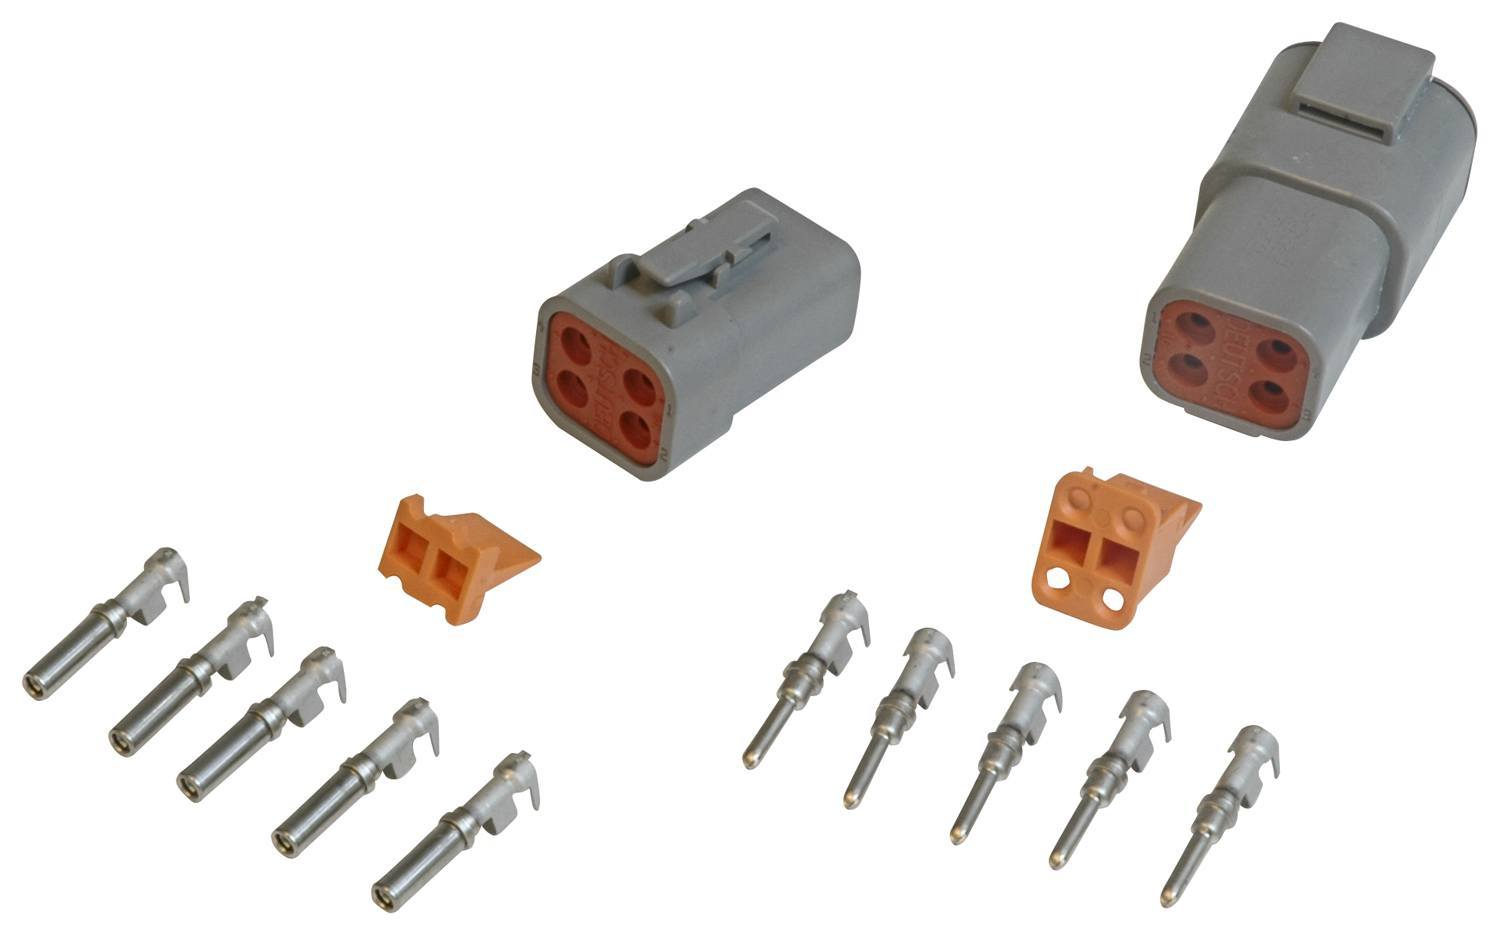 MSD Ignition 8187 Electrical Connector, Deutsch Connector, 4 Pin, 12-14 Gauge, Kit